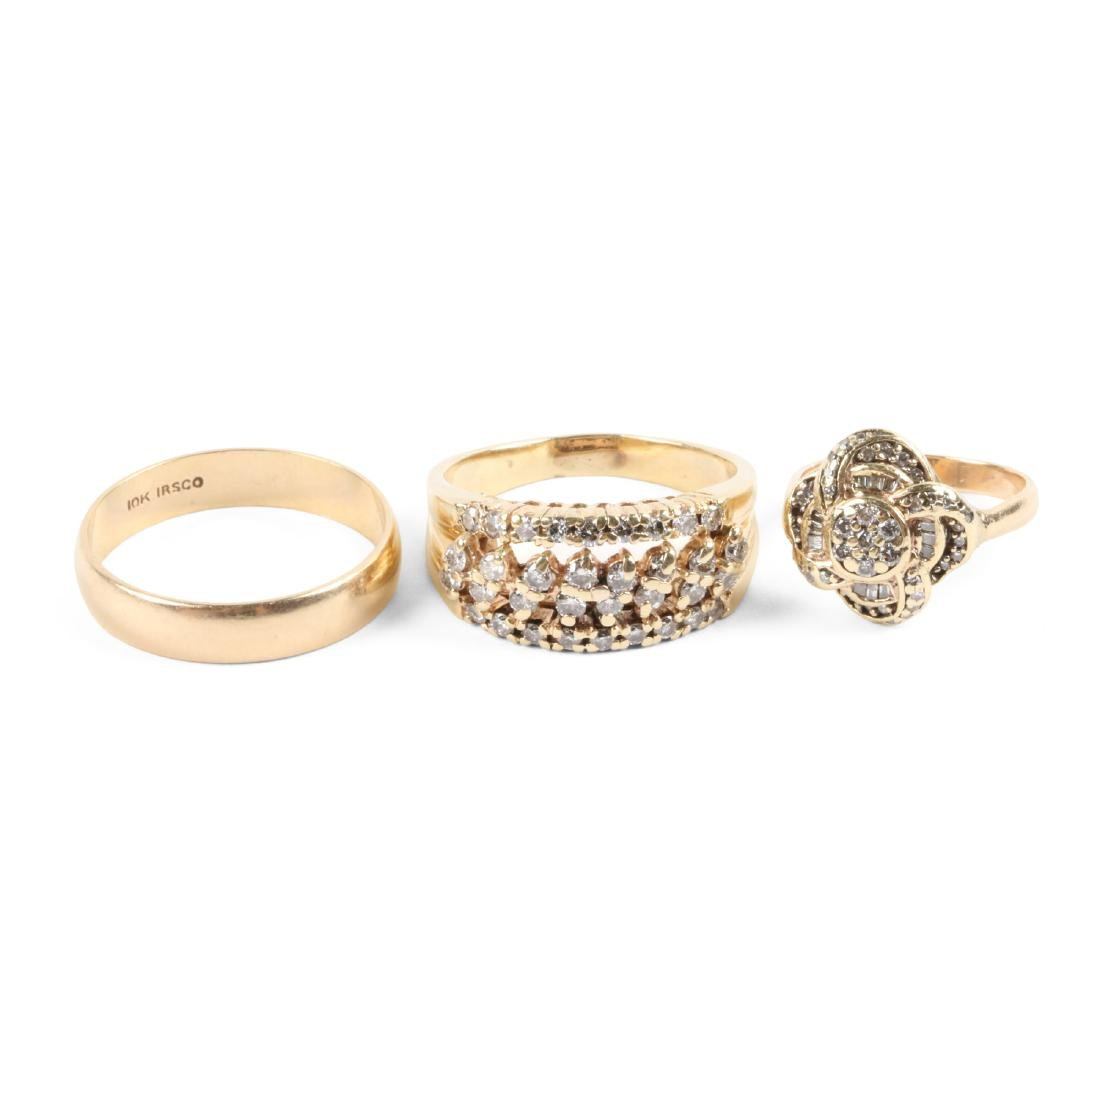 A Trio, 10K Gold & Diamond Rings